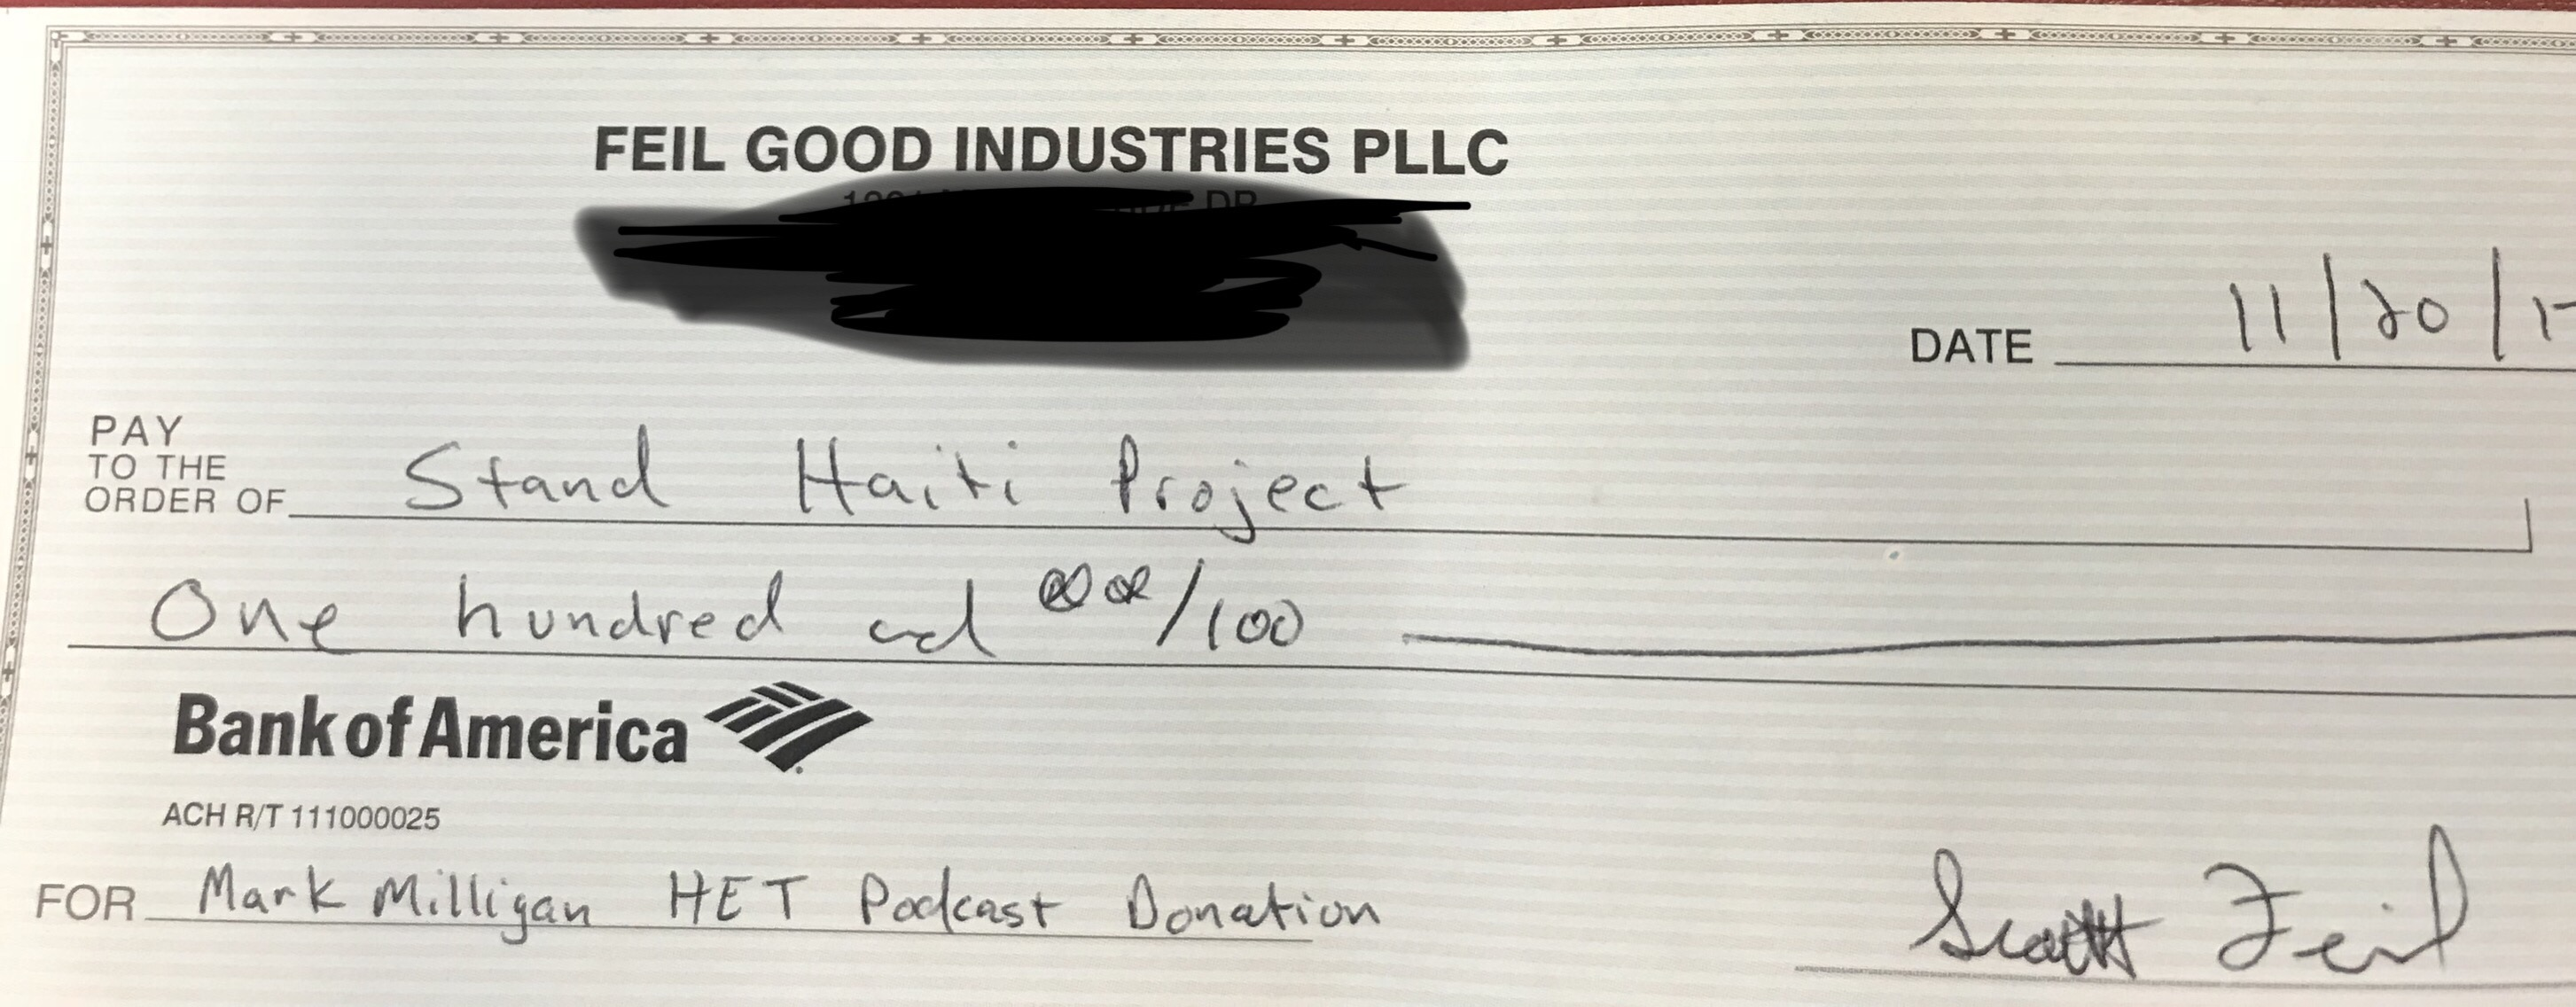 Stand Haiti Project Donation